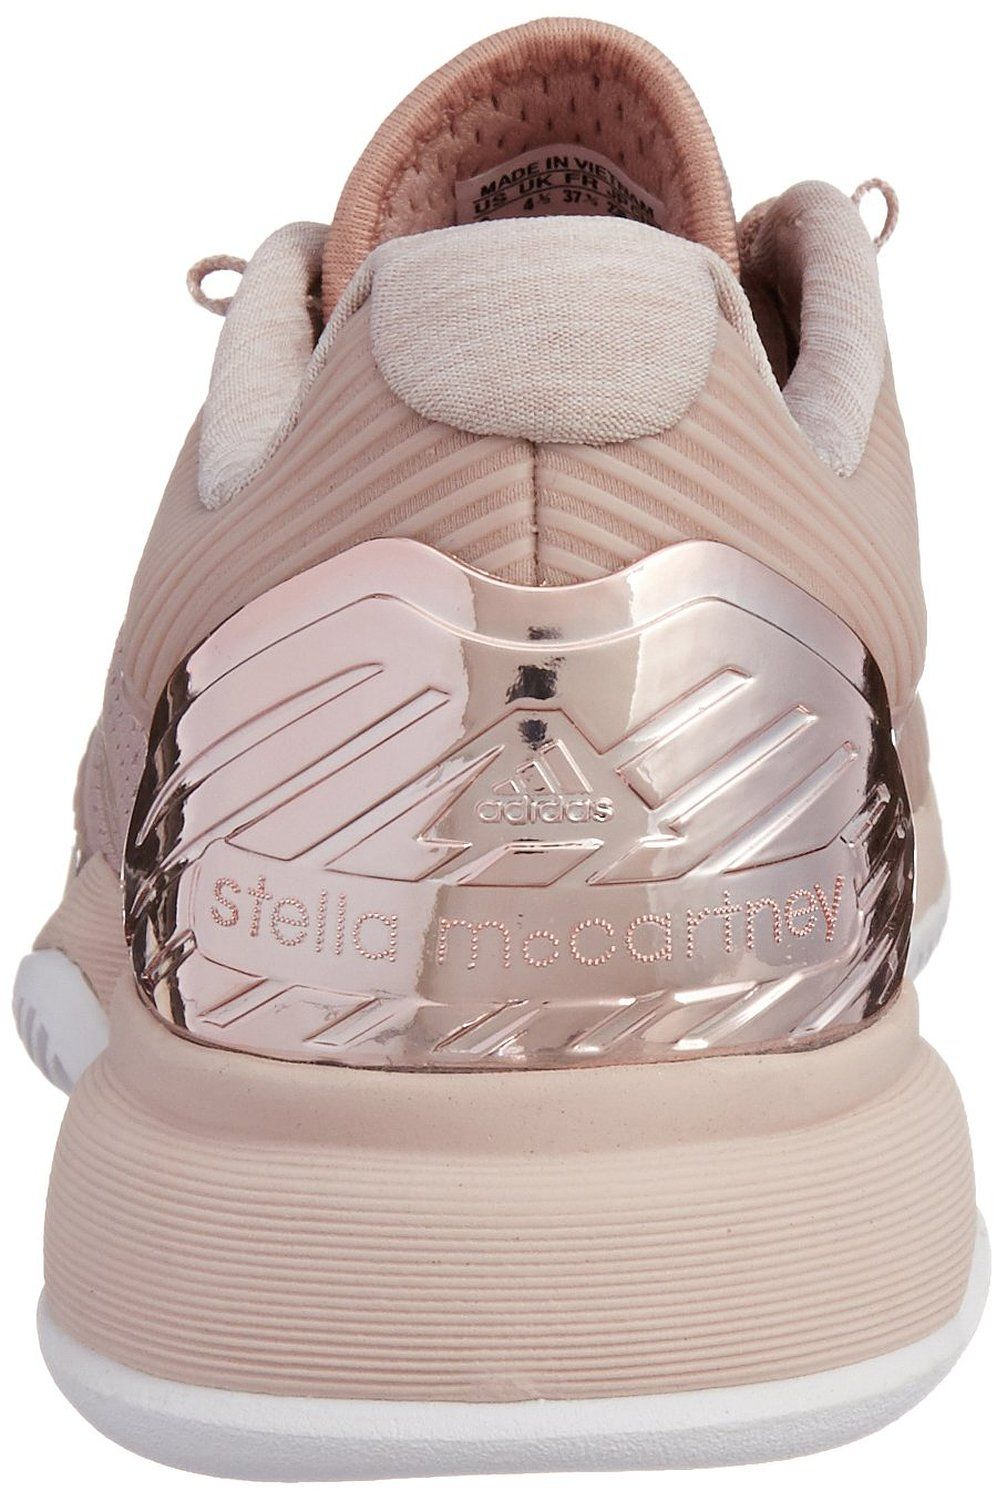 Tennis Barricade Ladies Pink Stella Adidas Mccartney ShoeLight 35jLAq4R